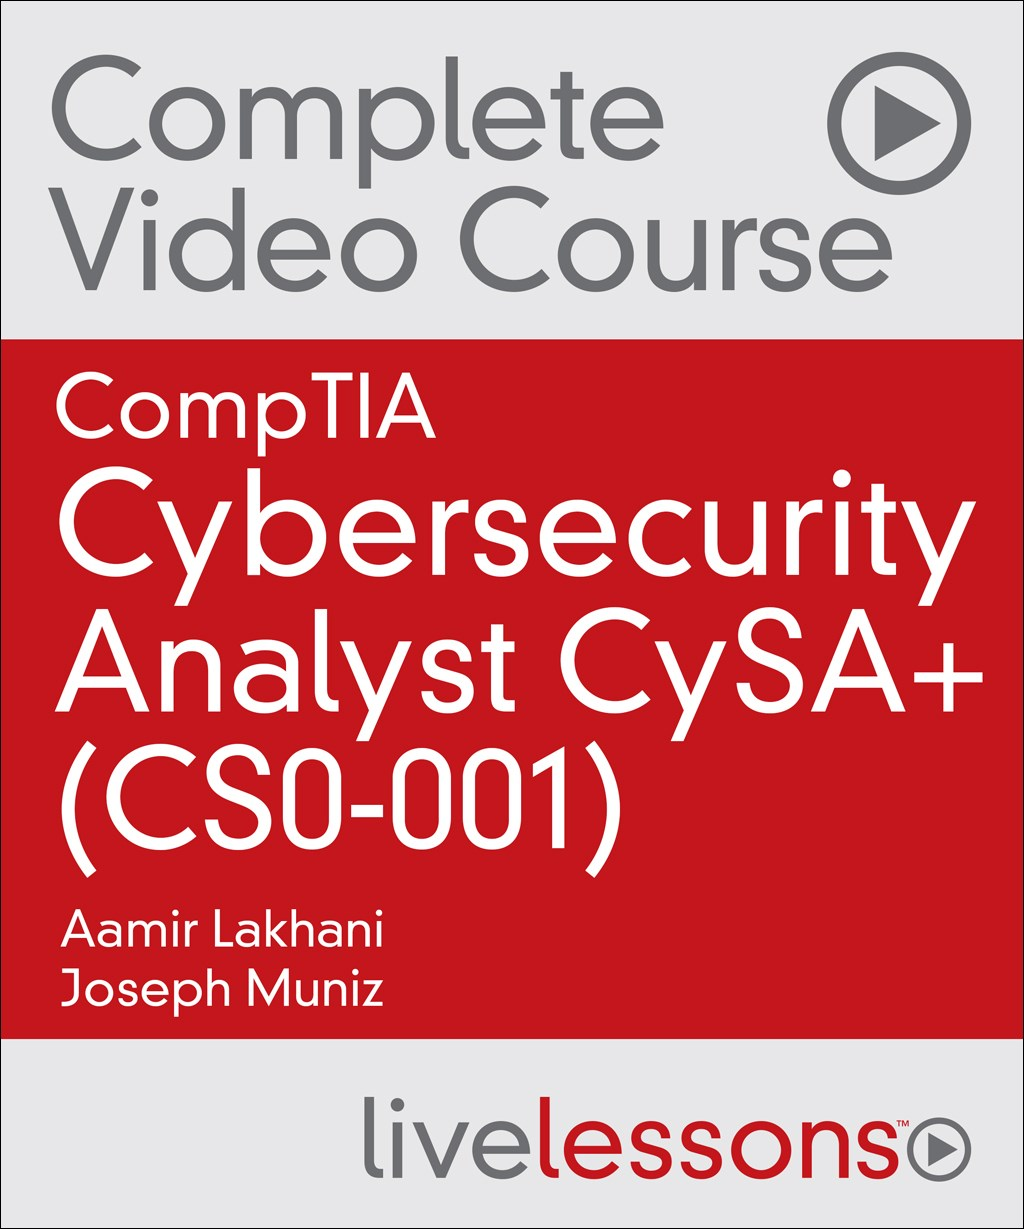 CompTIA Cybersecurity Analyst CSA+ (CS0-001) Complete Video Course and Practice Test